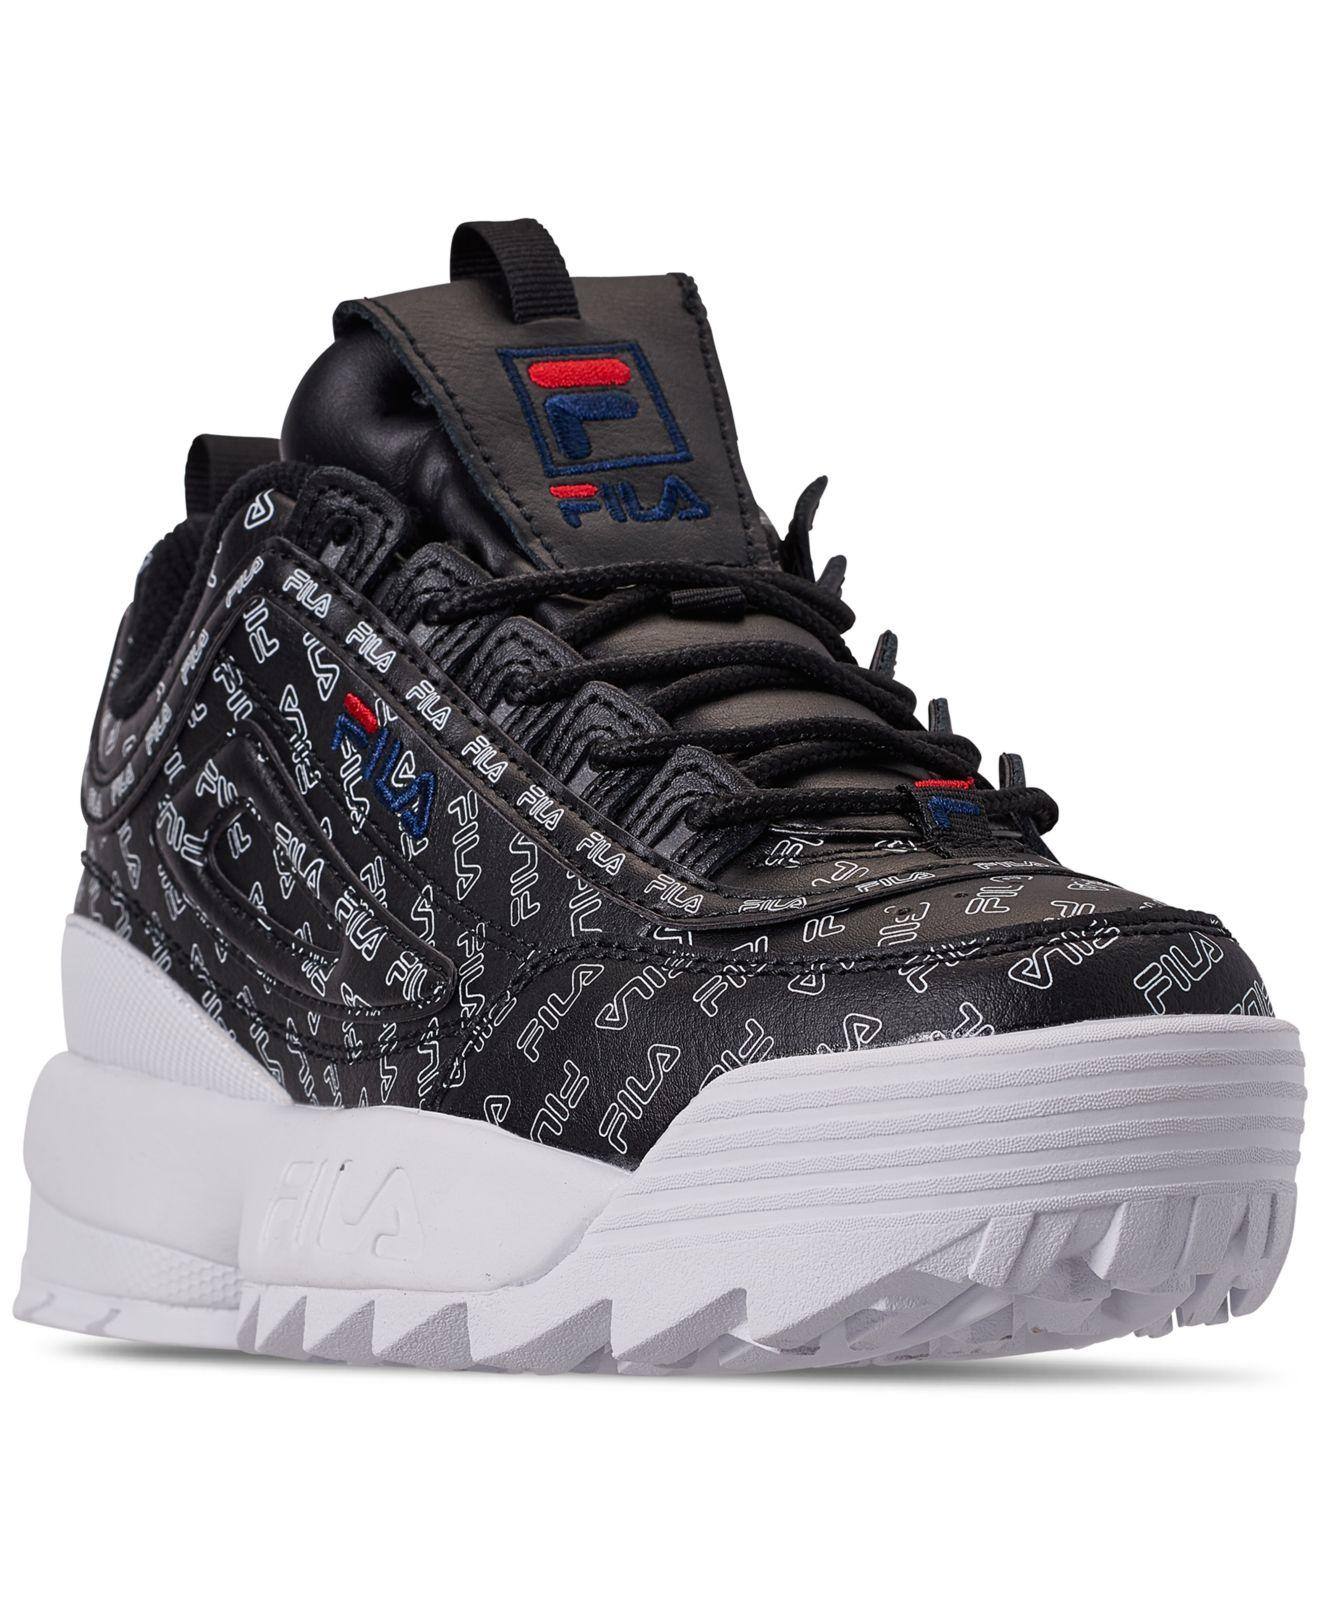 f40bea5e6fb37 Lyst - Fila Women s Disruptor Ii Multi Low-top Sneakers in Black ...